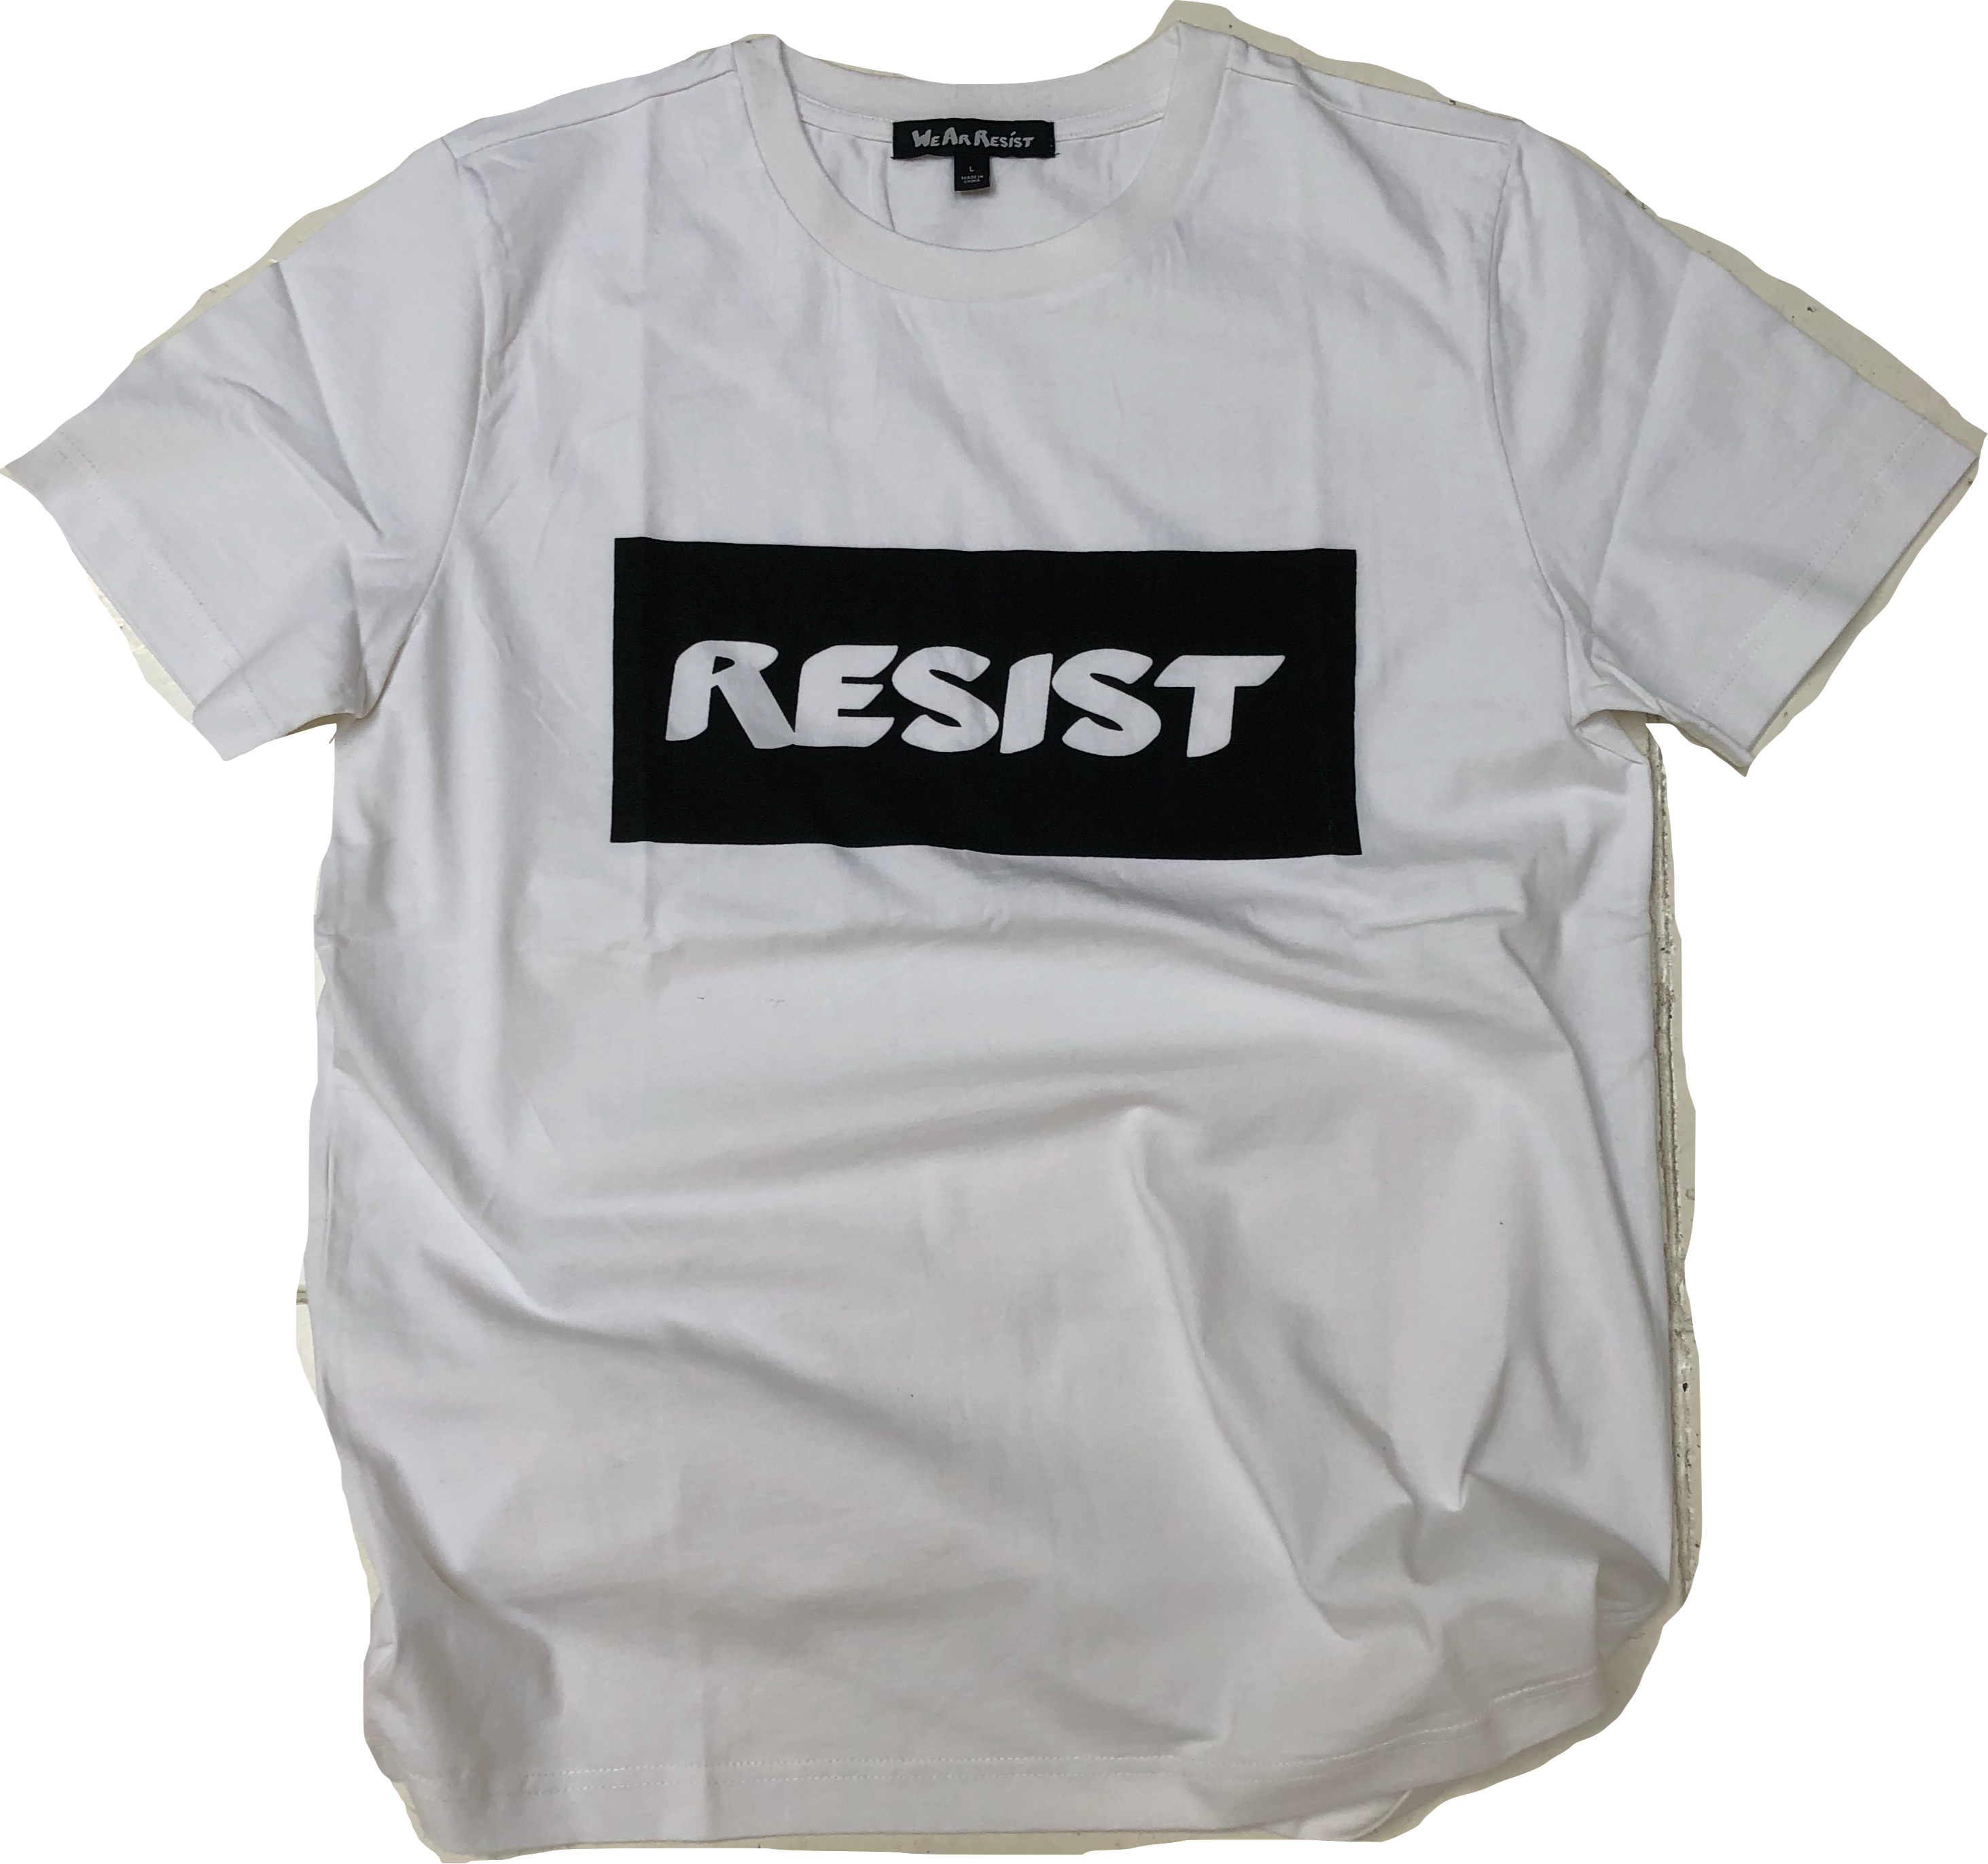 Resist Cotton T-Shirt W - WeArResist - T-Shirt - TOPGEARNY